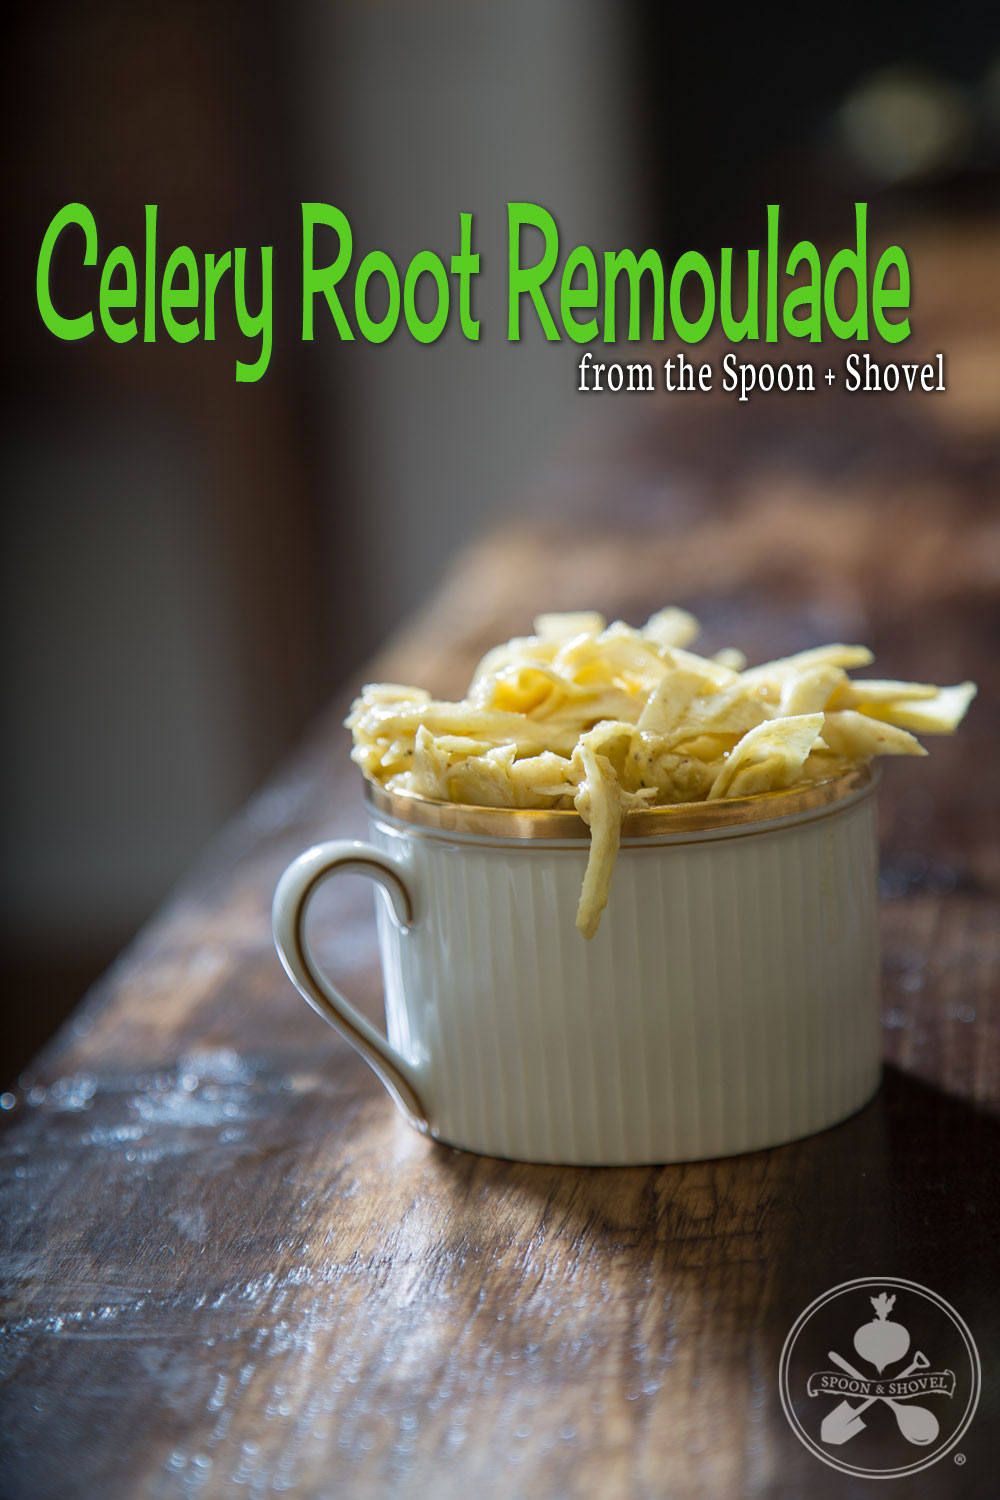 Vegan celery root remoulade from The Spoon + Shovel